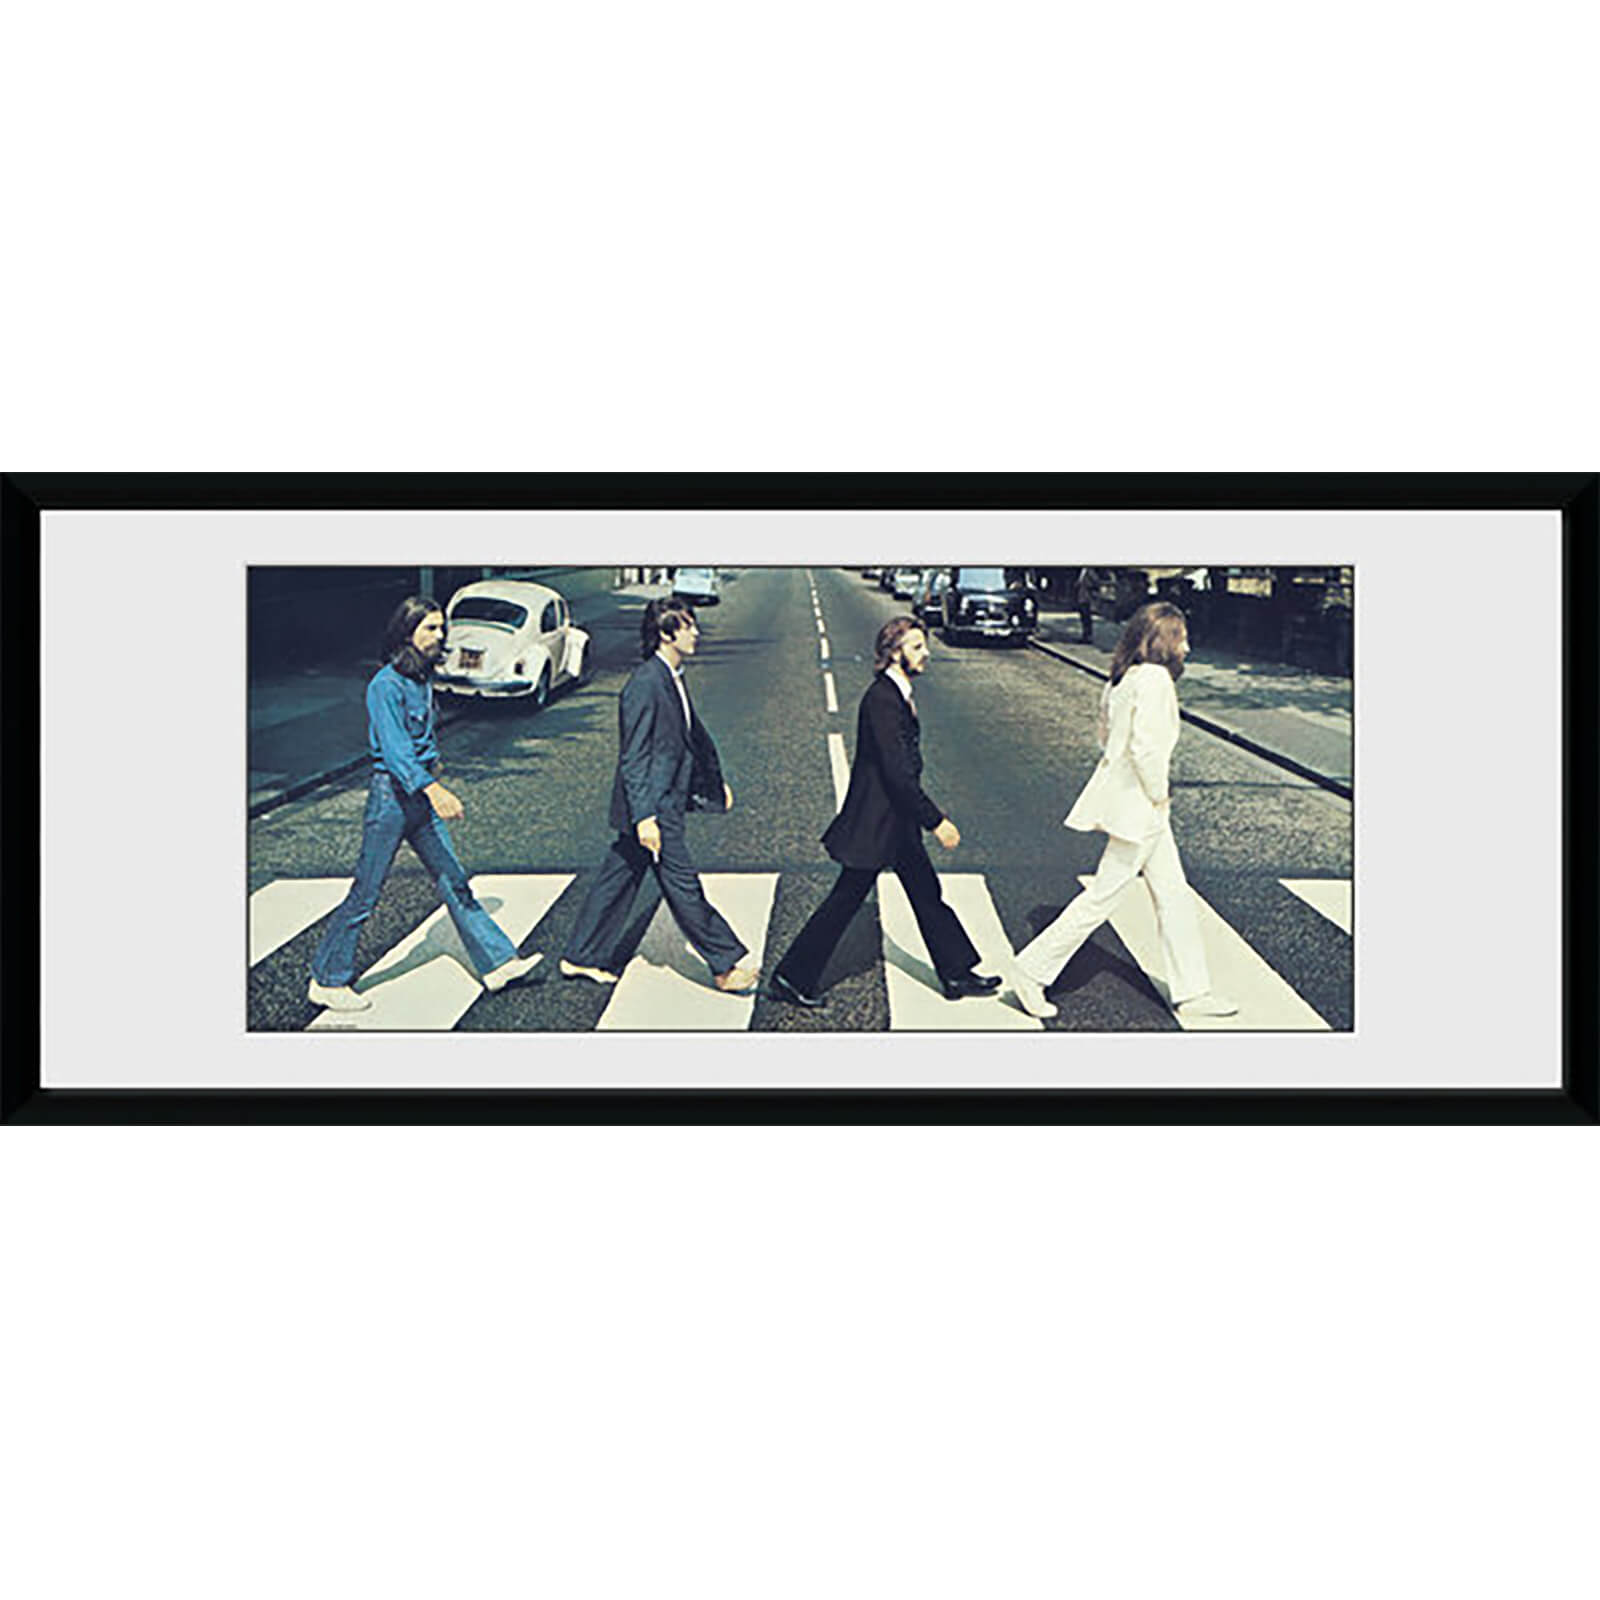 The Beatles Abbey Road Tracks - 30 x 12 Inches Framed Photograph